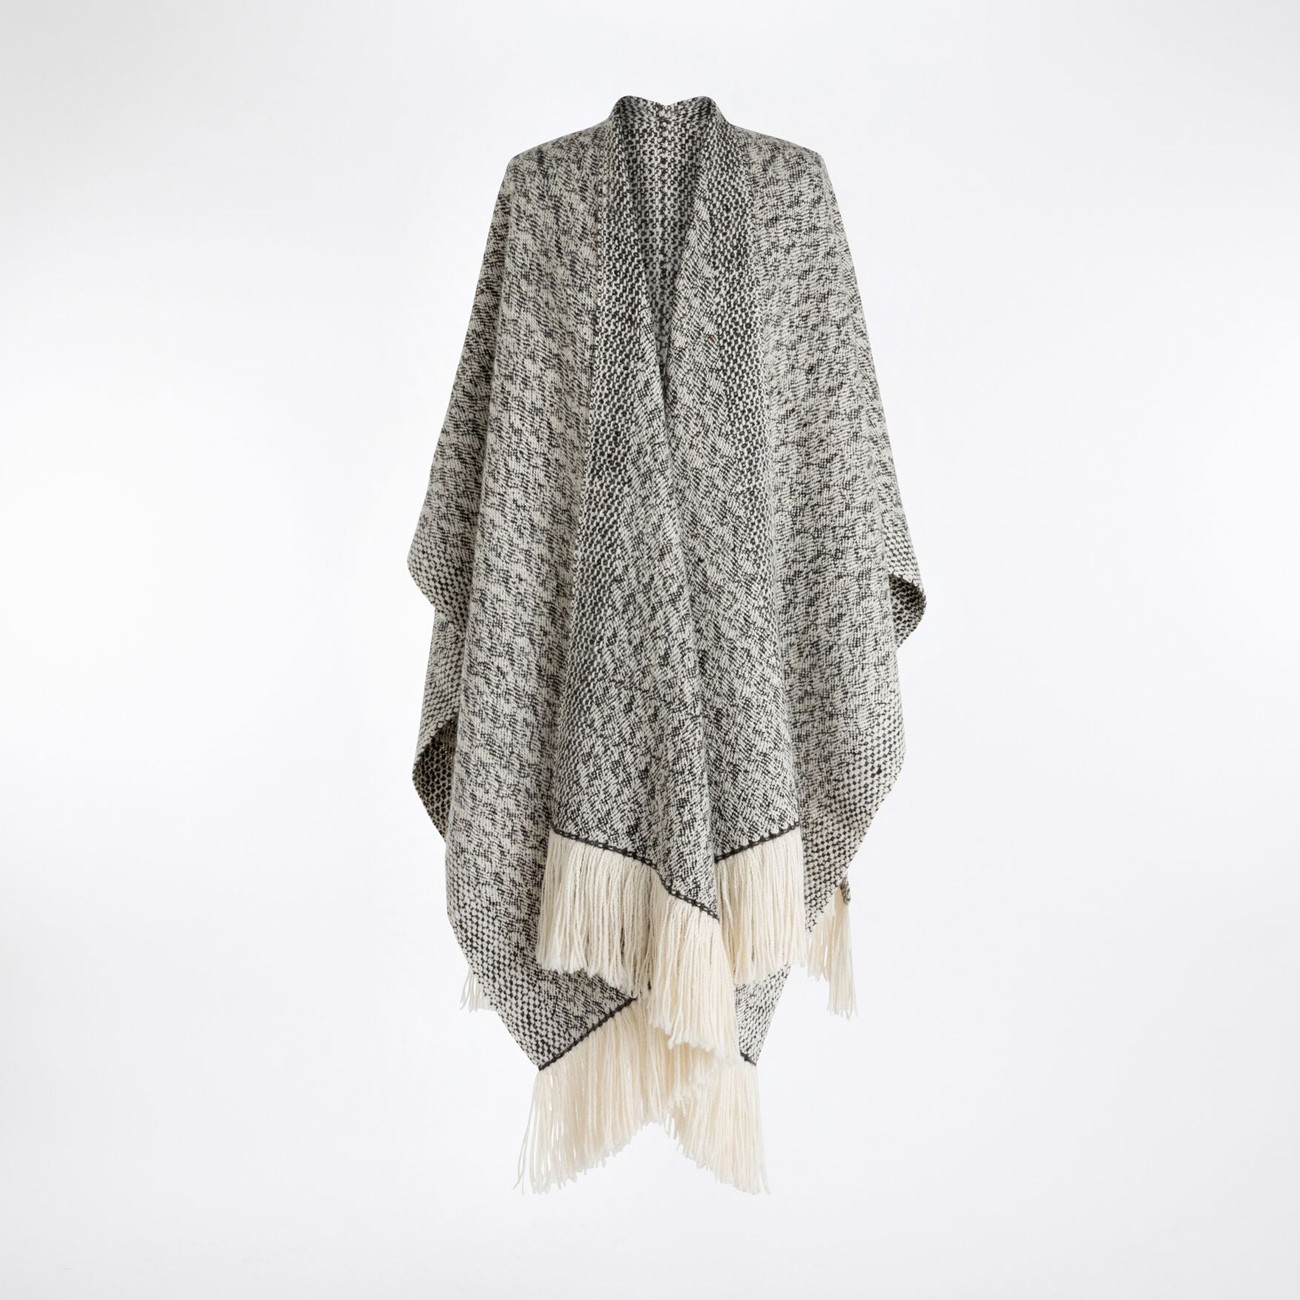 Handwoven Fallen Leaves Blanket Wrap - Natural Charcoal and White Alpaca - 0